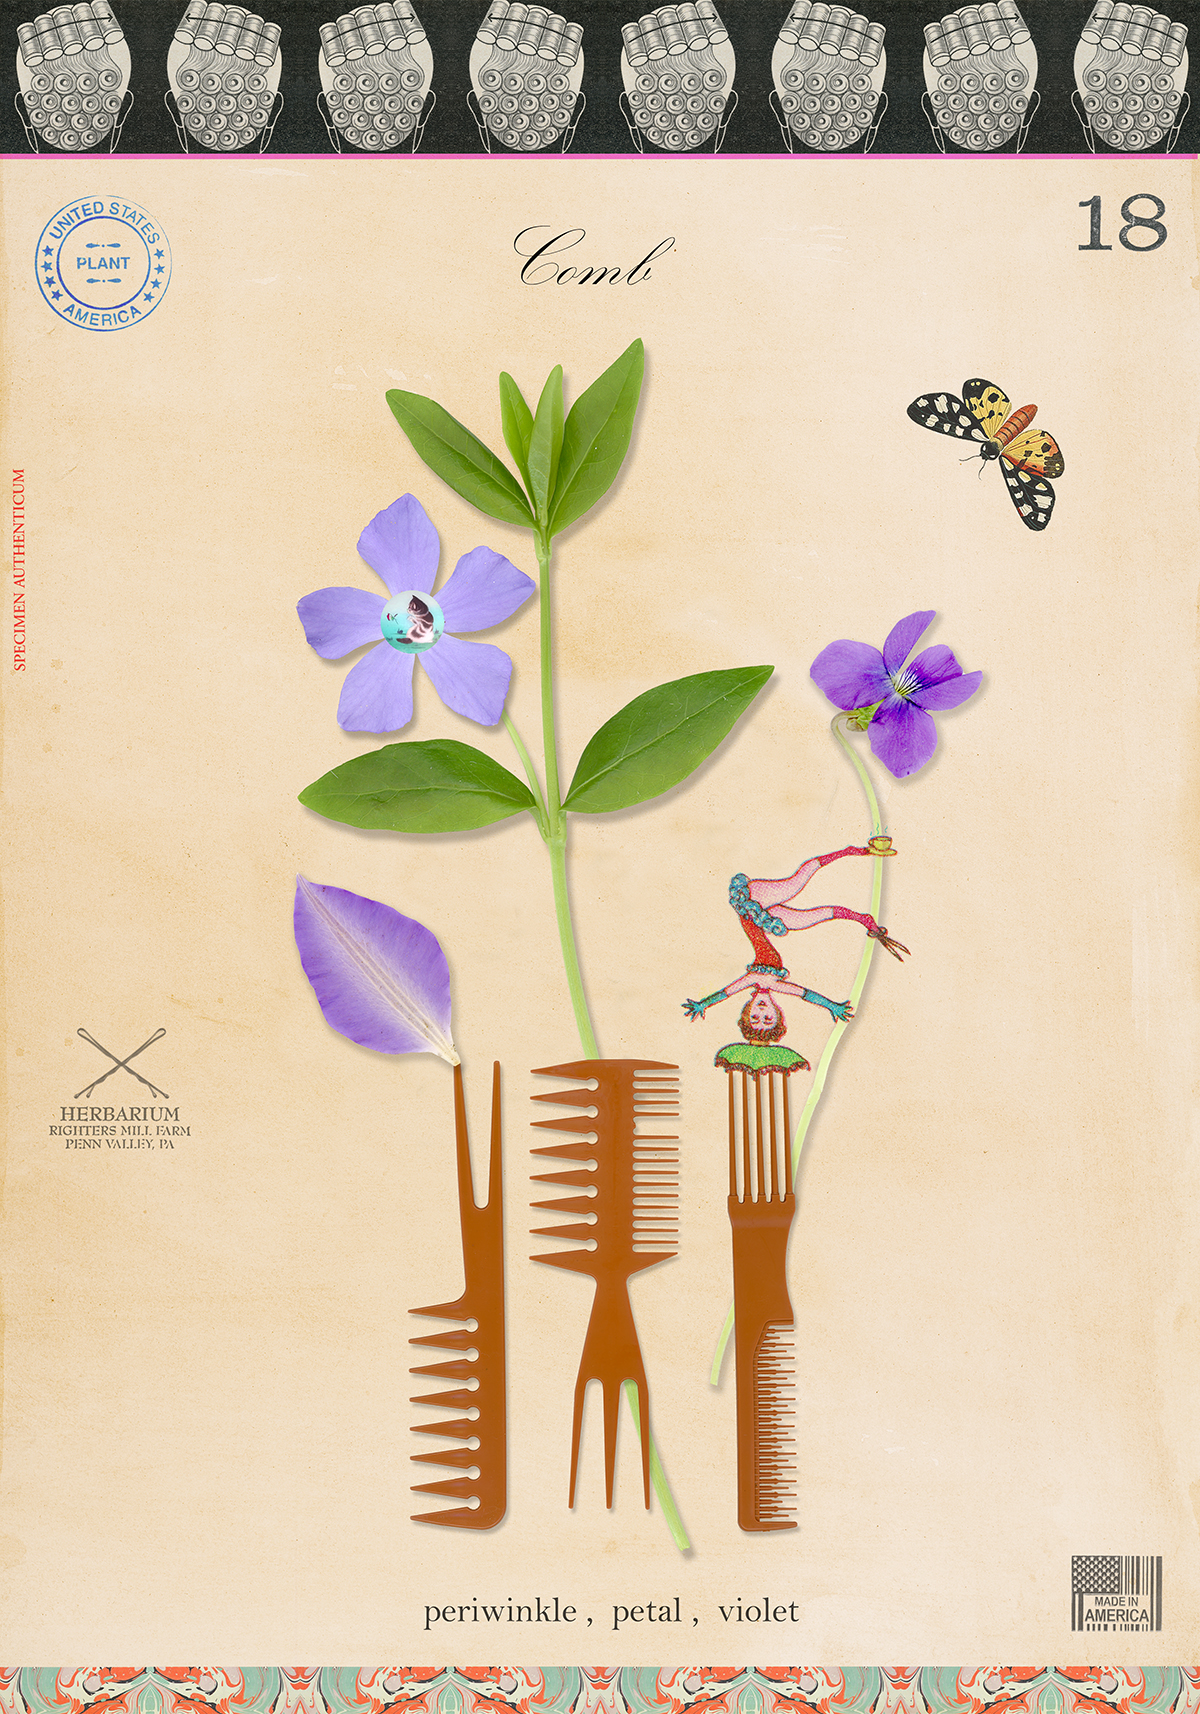 Plant with Comb - 20x14